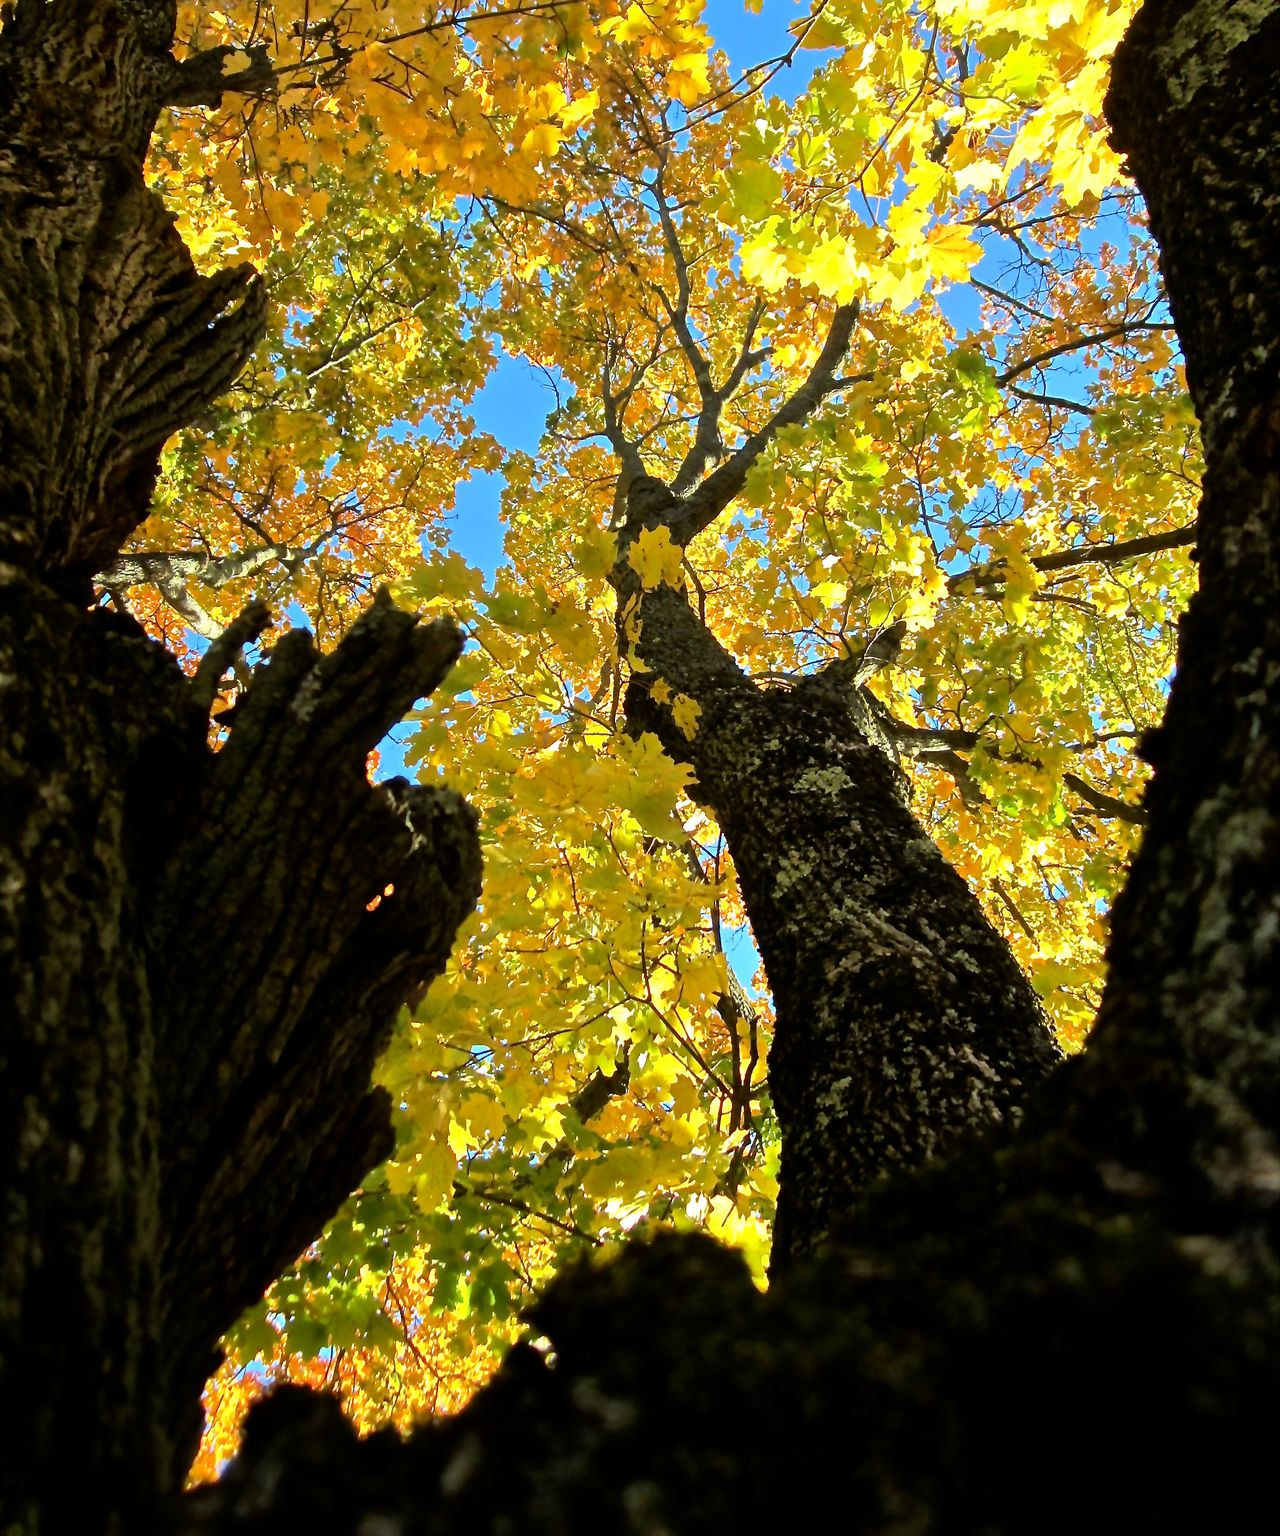 This tree has been in my life since I was 3 years old. As a child I used to climb in it. Tree Lover Tree Fall Colors Old Friend Maple Tree Hugging A Tree